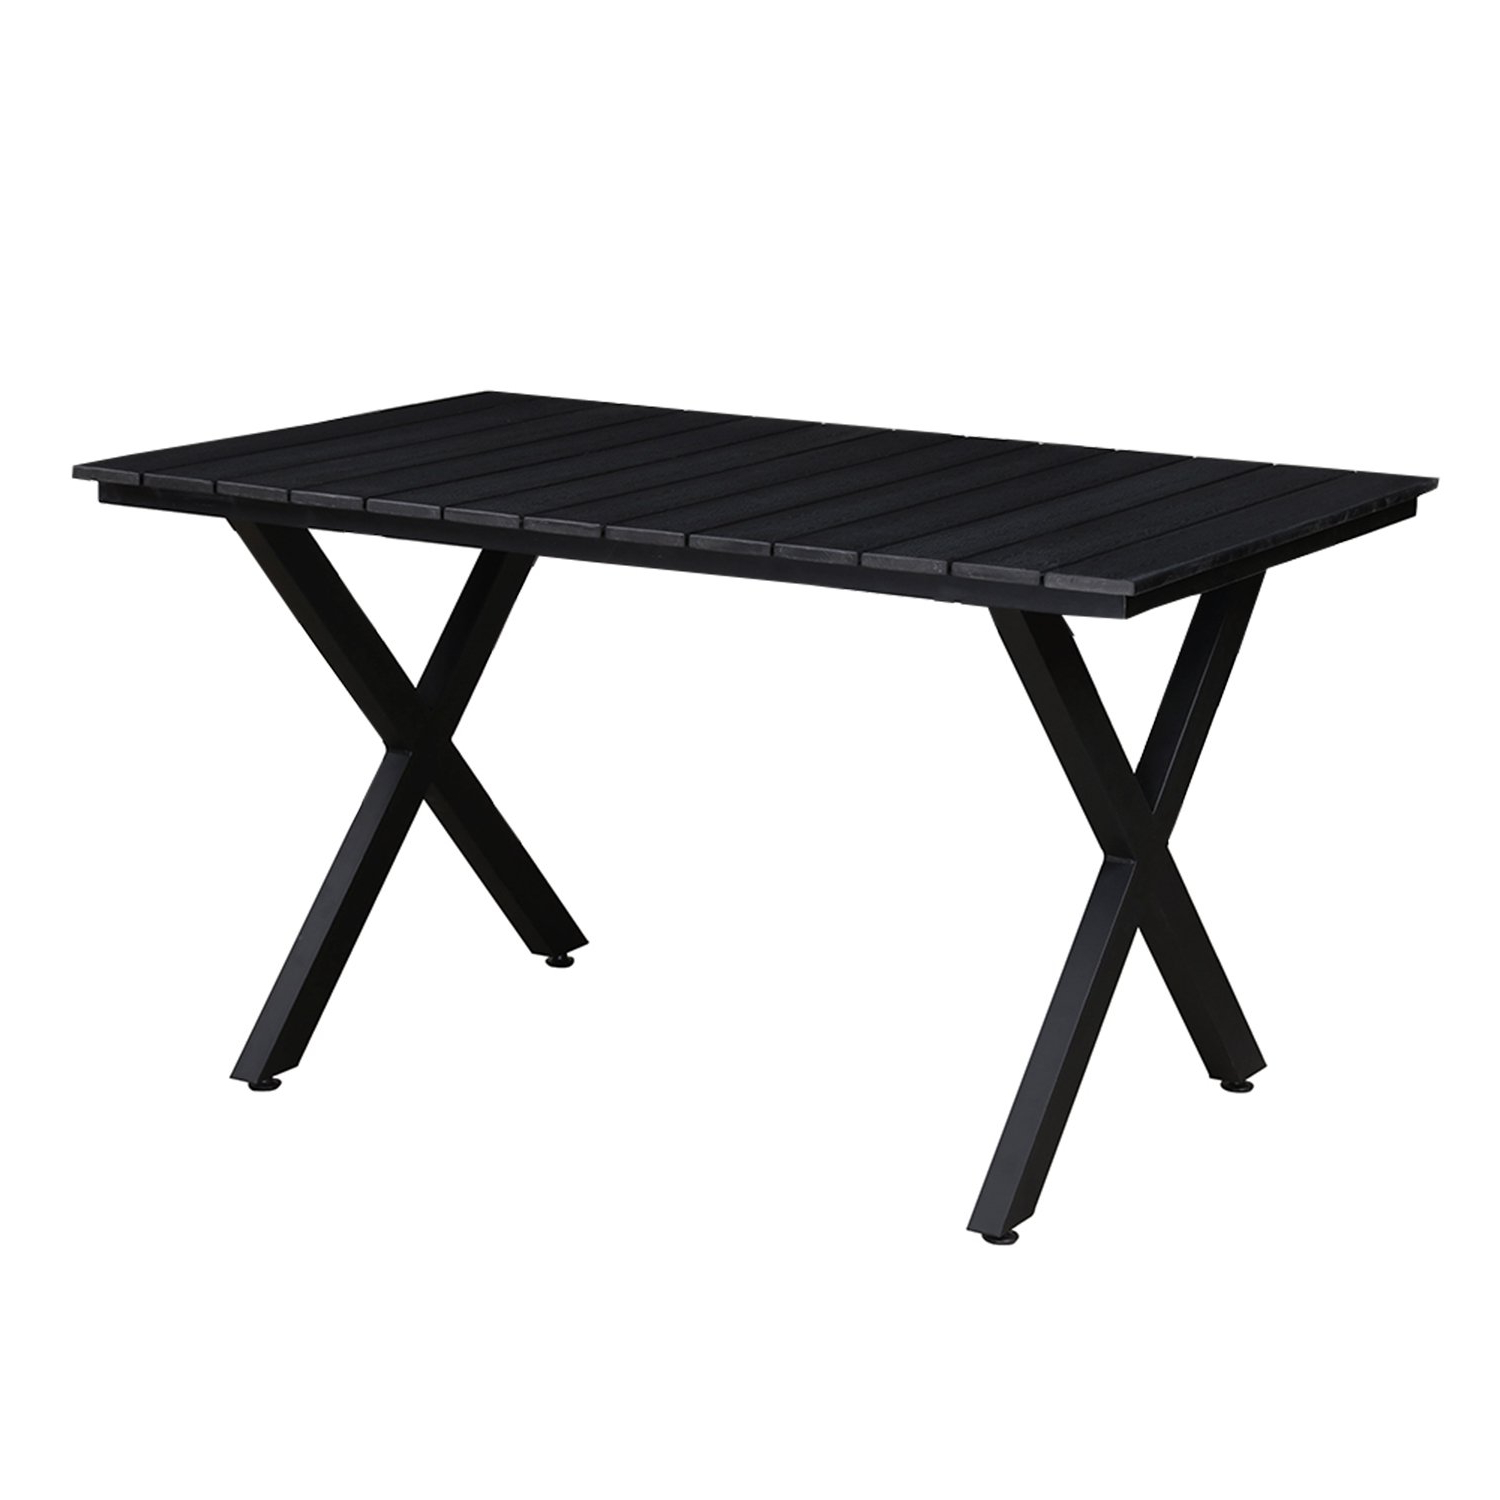 Well Liked Contemporary Rectangular Dining Tables Inside Amazon : Oakland Living Az902 Table Bk Modern Outdoor (View 17 of 25)